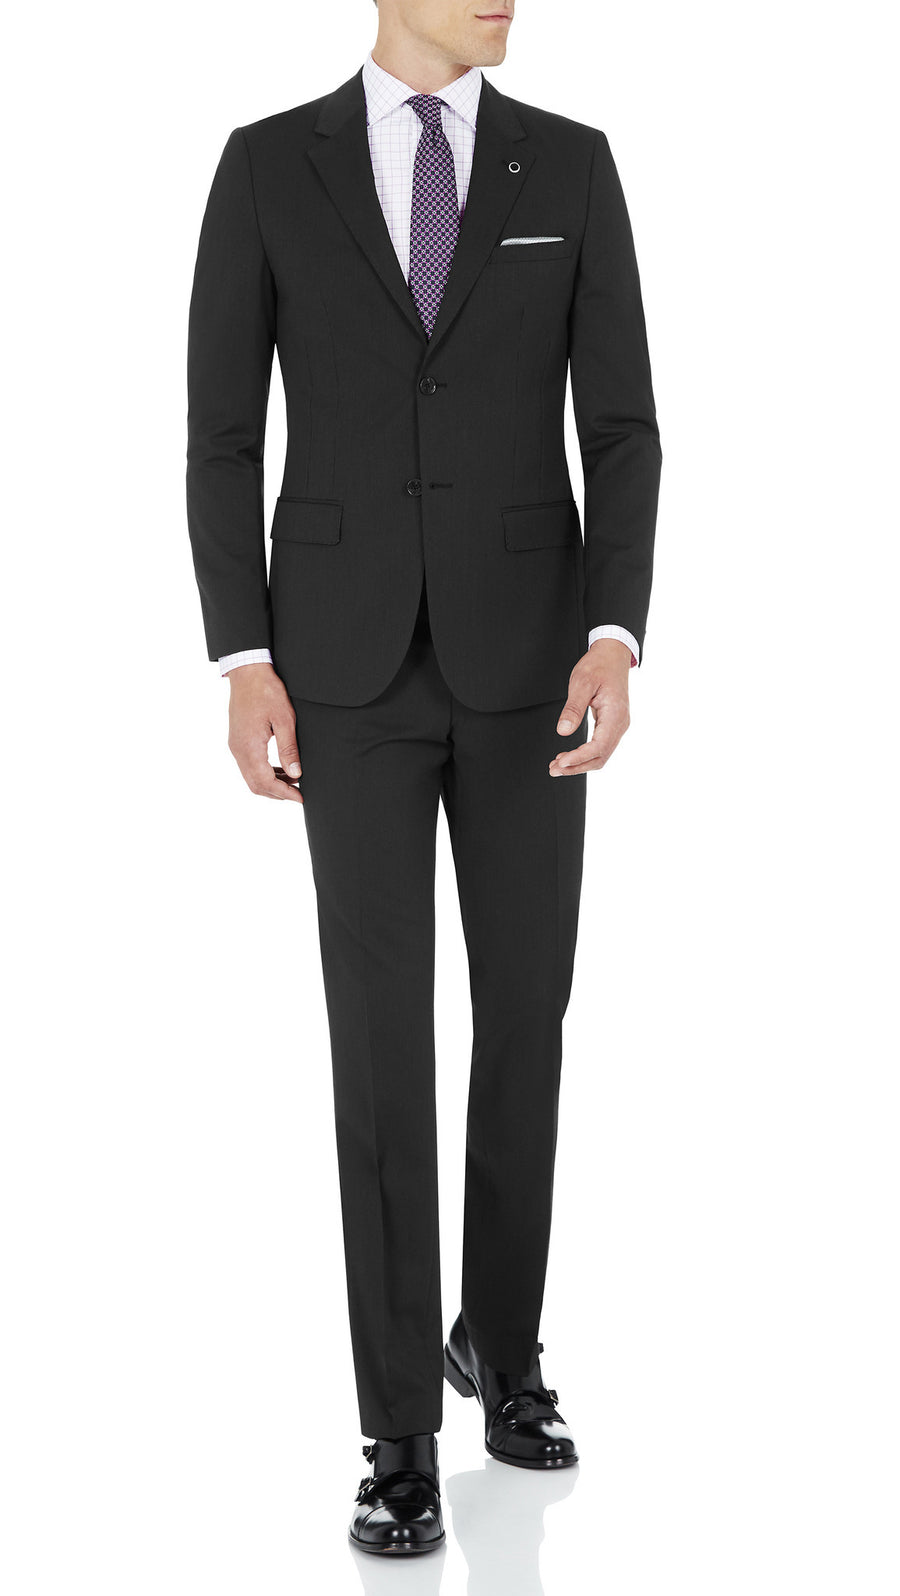 Blackjacket Skinny Fit Suit in Charcoal grey - Ron Bennett Menswear  - 2